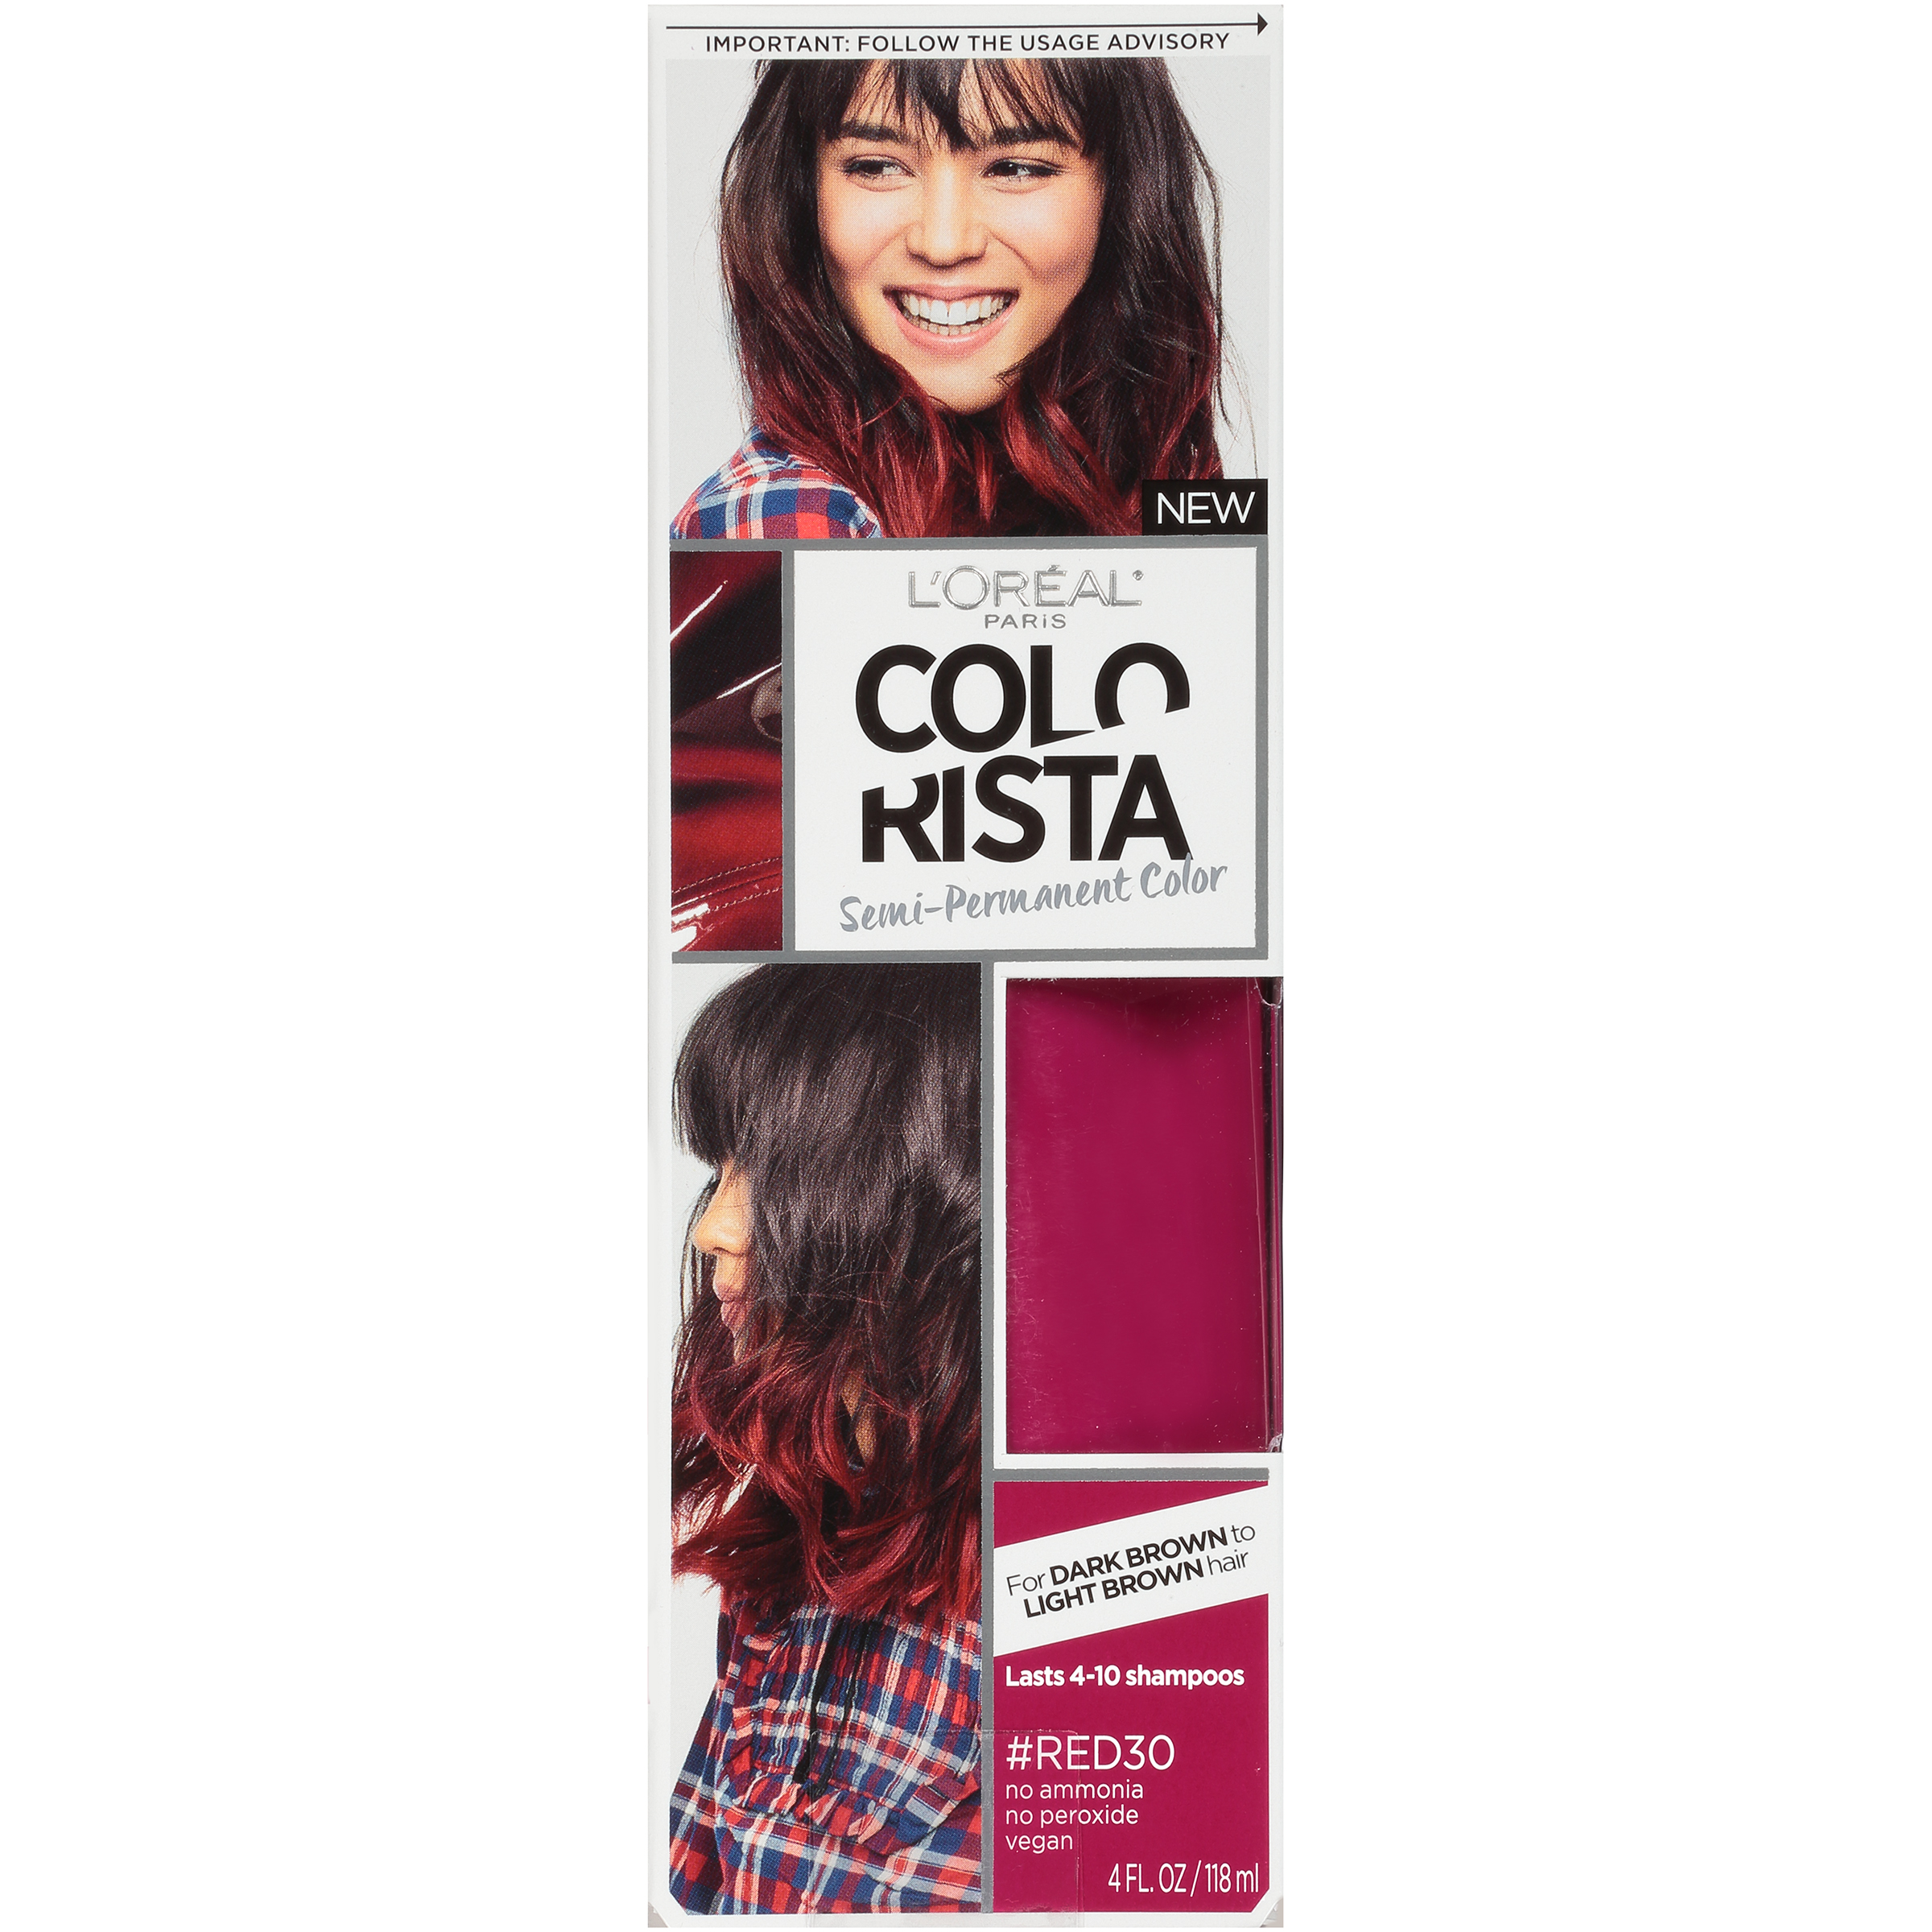 LOral Paris Colorista SemiPermanent Hair Color For Brunettes eBay